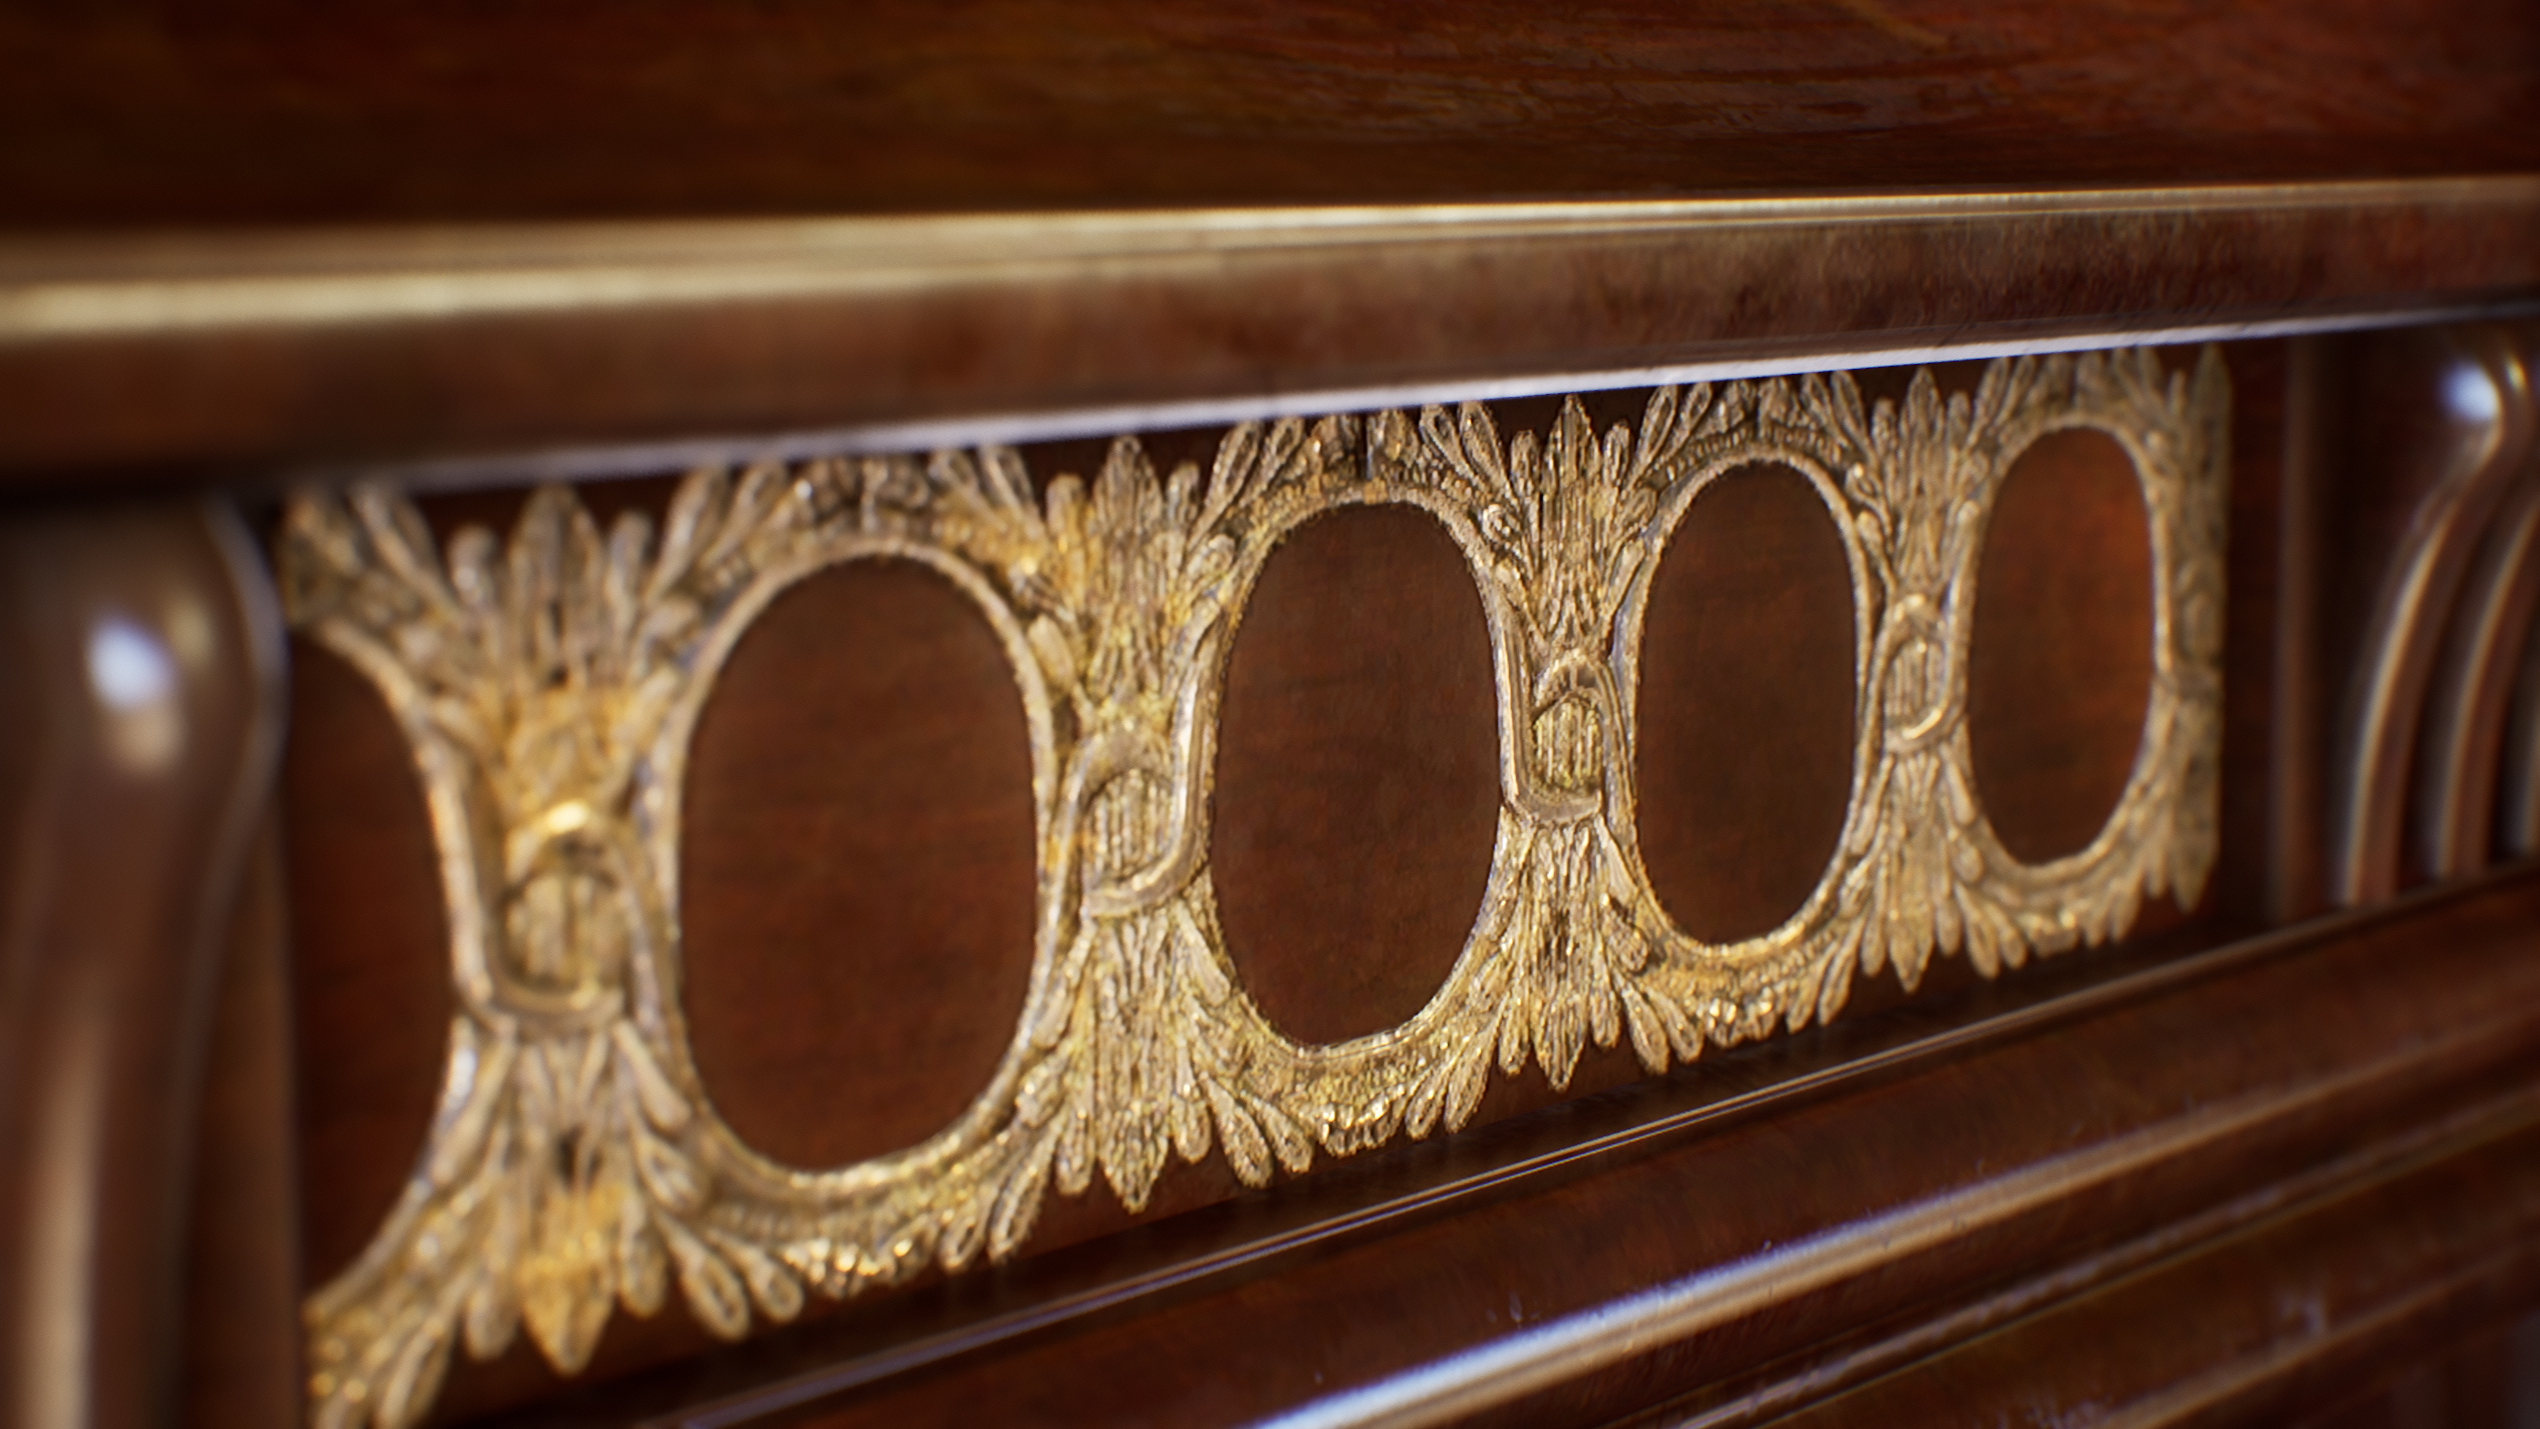 UE4 screenshot close up detailed shot of the victorian table trim decals